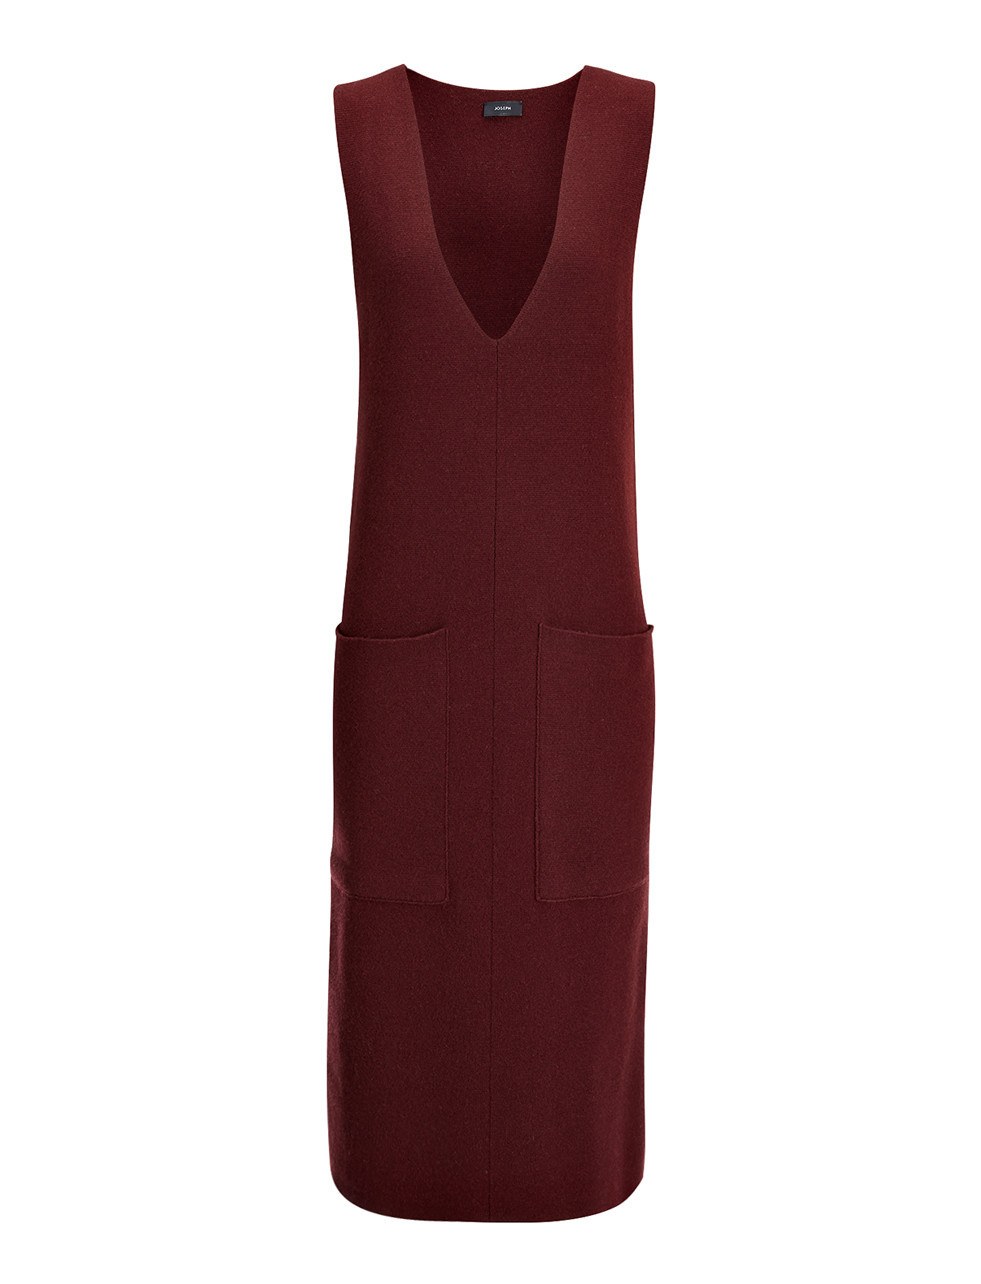 Soft Wool Milano Illinois Dress In Dark Oxblood - neckline: plunge; pattern: plain; sleeve style: sleeveless; hip detail: front pockets at hip; style: vest; predominant colour: burgundy; occasions: casual, creative work; length: on the knee; fit: body skimming; fibres: wool - 100%; sleeve length: sleeveless; texture group: knits/crochet; pattern type: knitted - fine stitch; season: s/s 2016